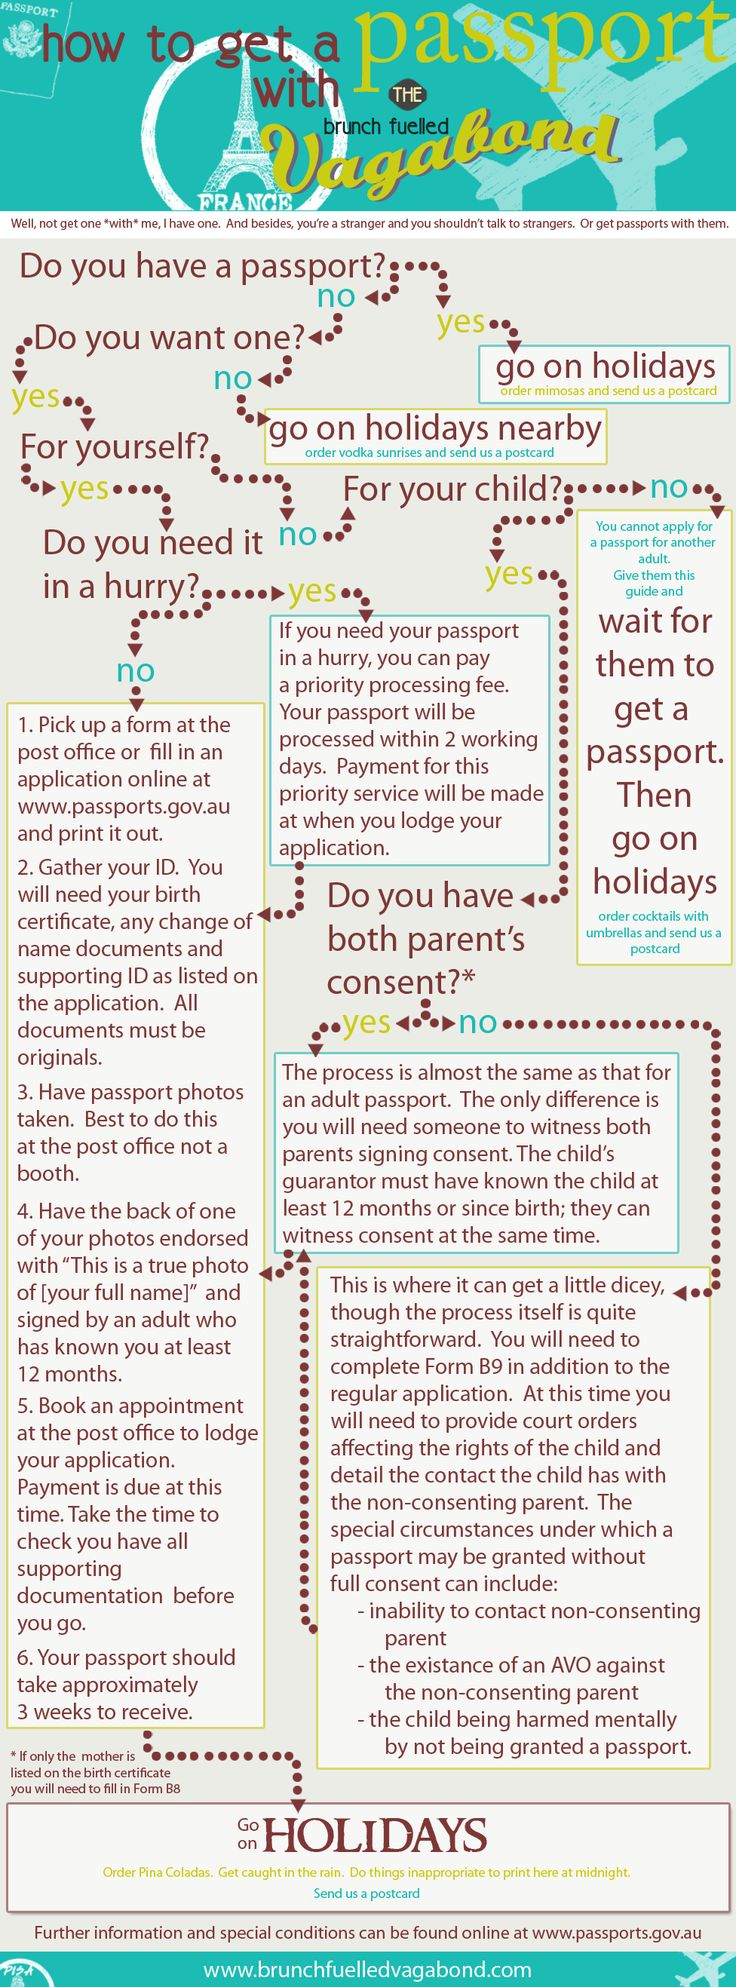 Need a passport but unsure where to start?  Come and get a passport with The Brunch Fuelled Vagabond.  Well not *with*me, because you're a stranger and I'm not supposed to talk to strangers.  Visit www.brunchfuelledvagabond.com to find out how.